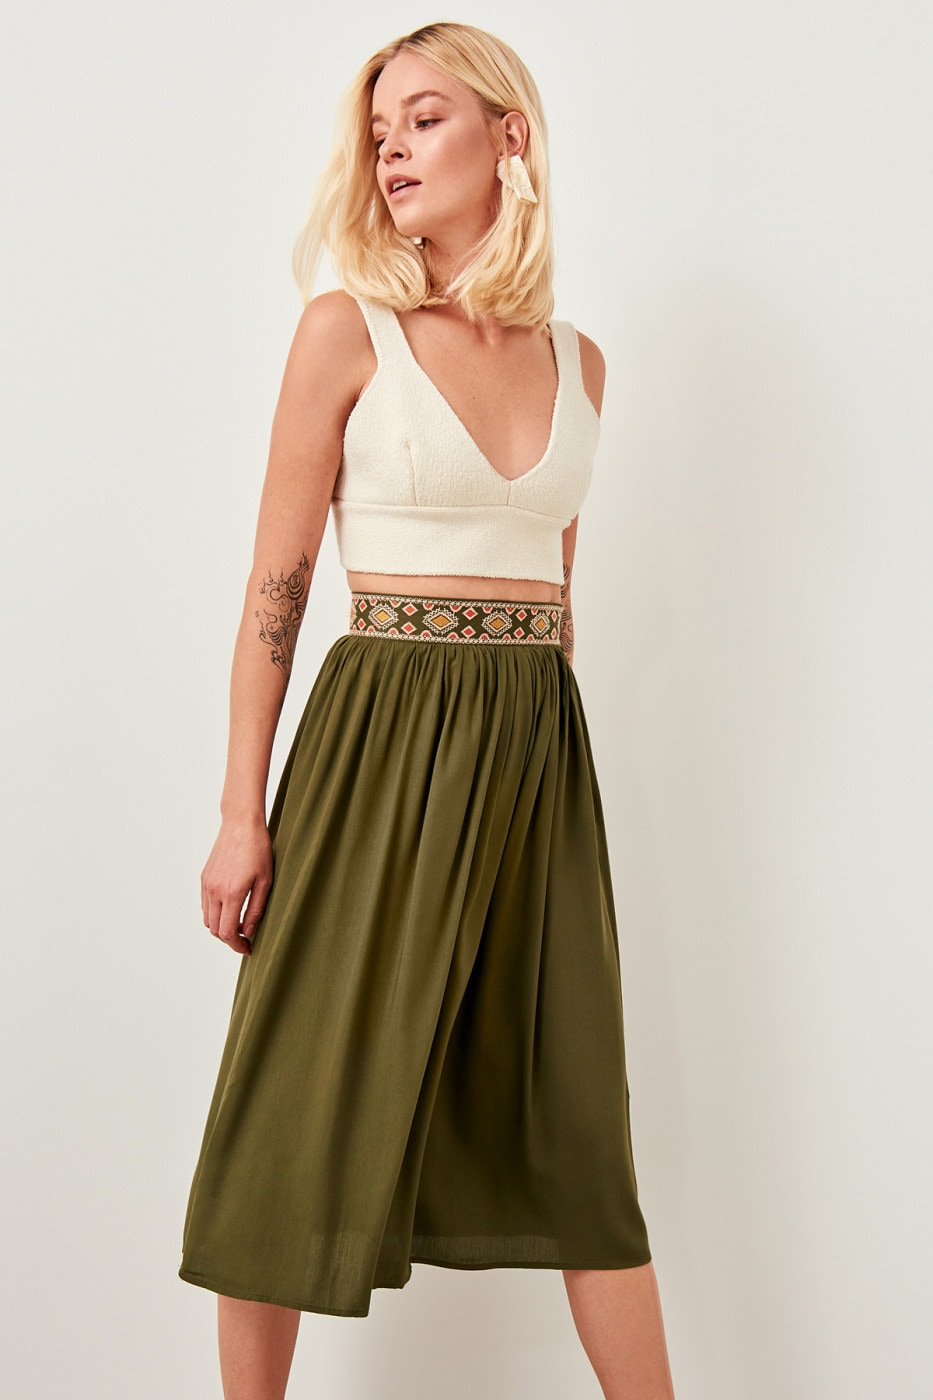 Trendyol Khaki Patterned Skirt